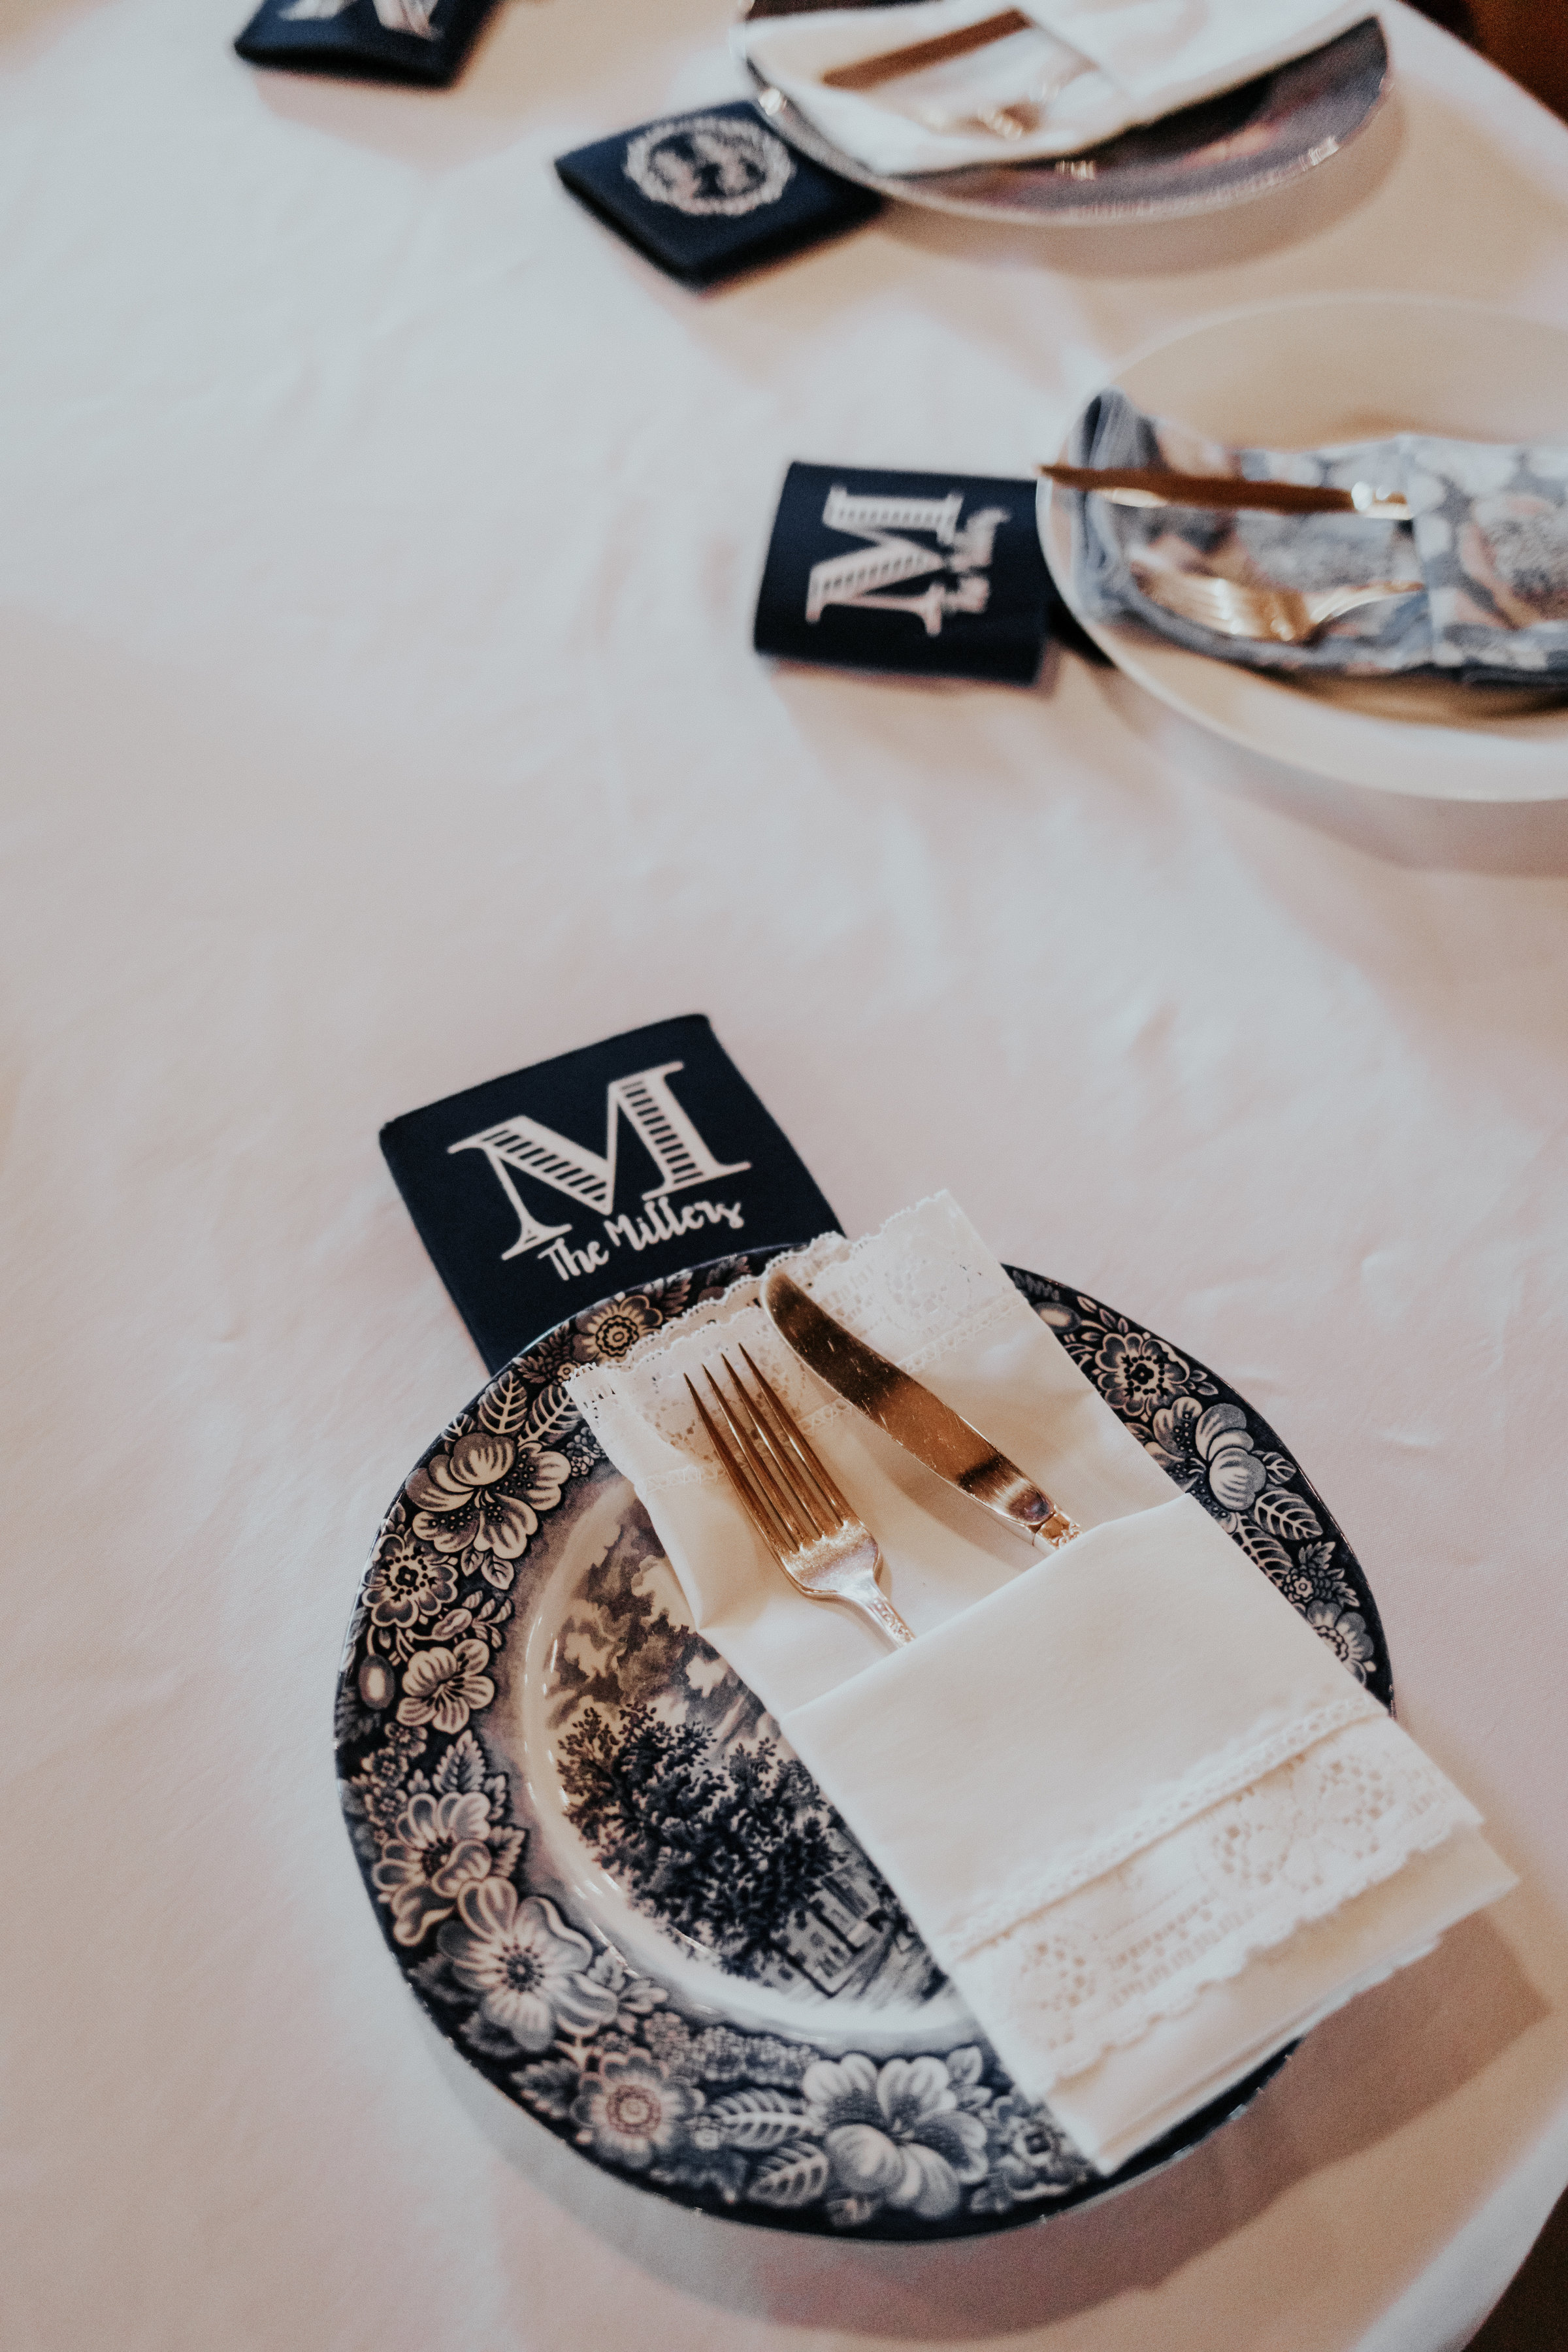 Every place setting was special and unique. White and blue mix matched plates came from family members along with the napkins and silverware.